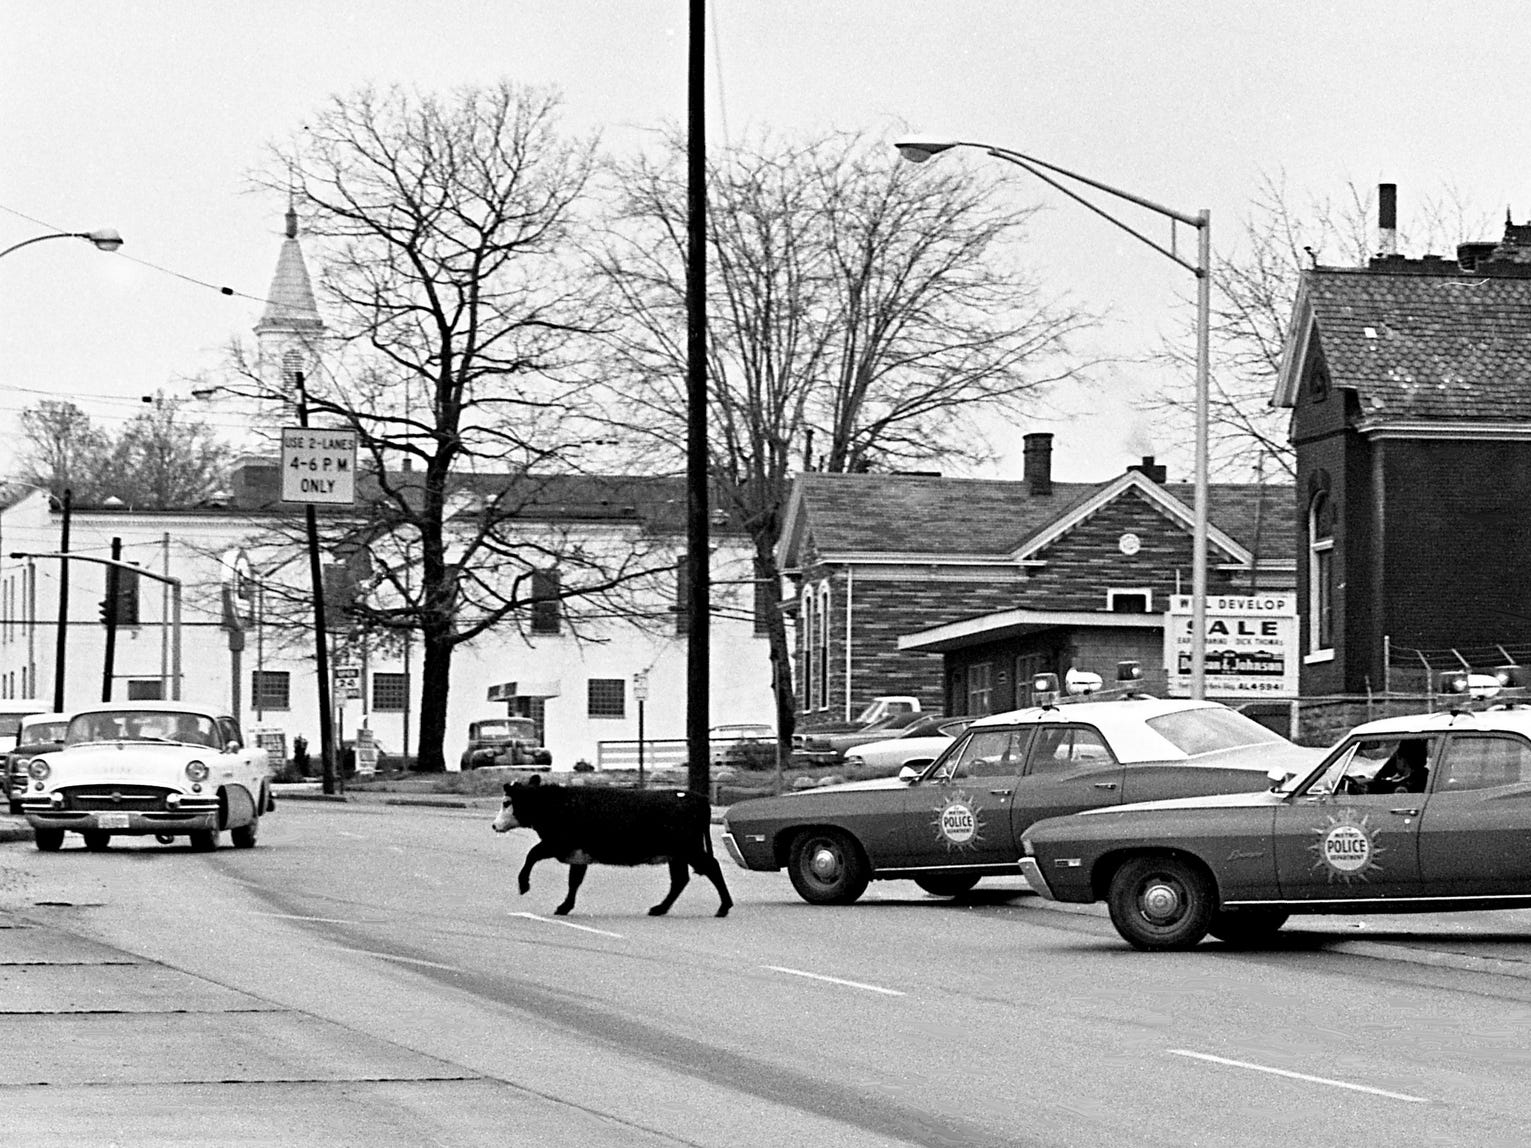 Metro police officers attempt to herd a young bull along Woodland Street on Dec. 13, 1968. The bull was captured with the aid of a rope on a playground on Main Street. Patrolman Carl Harrison said the animal apparently jumped or fell from a truck on its way to the stockyards.